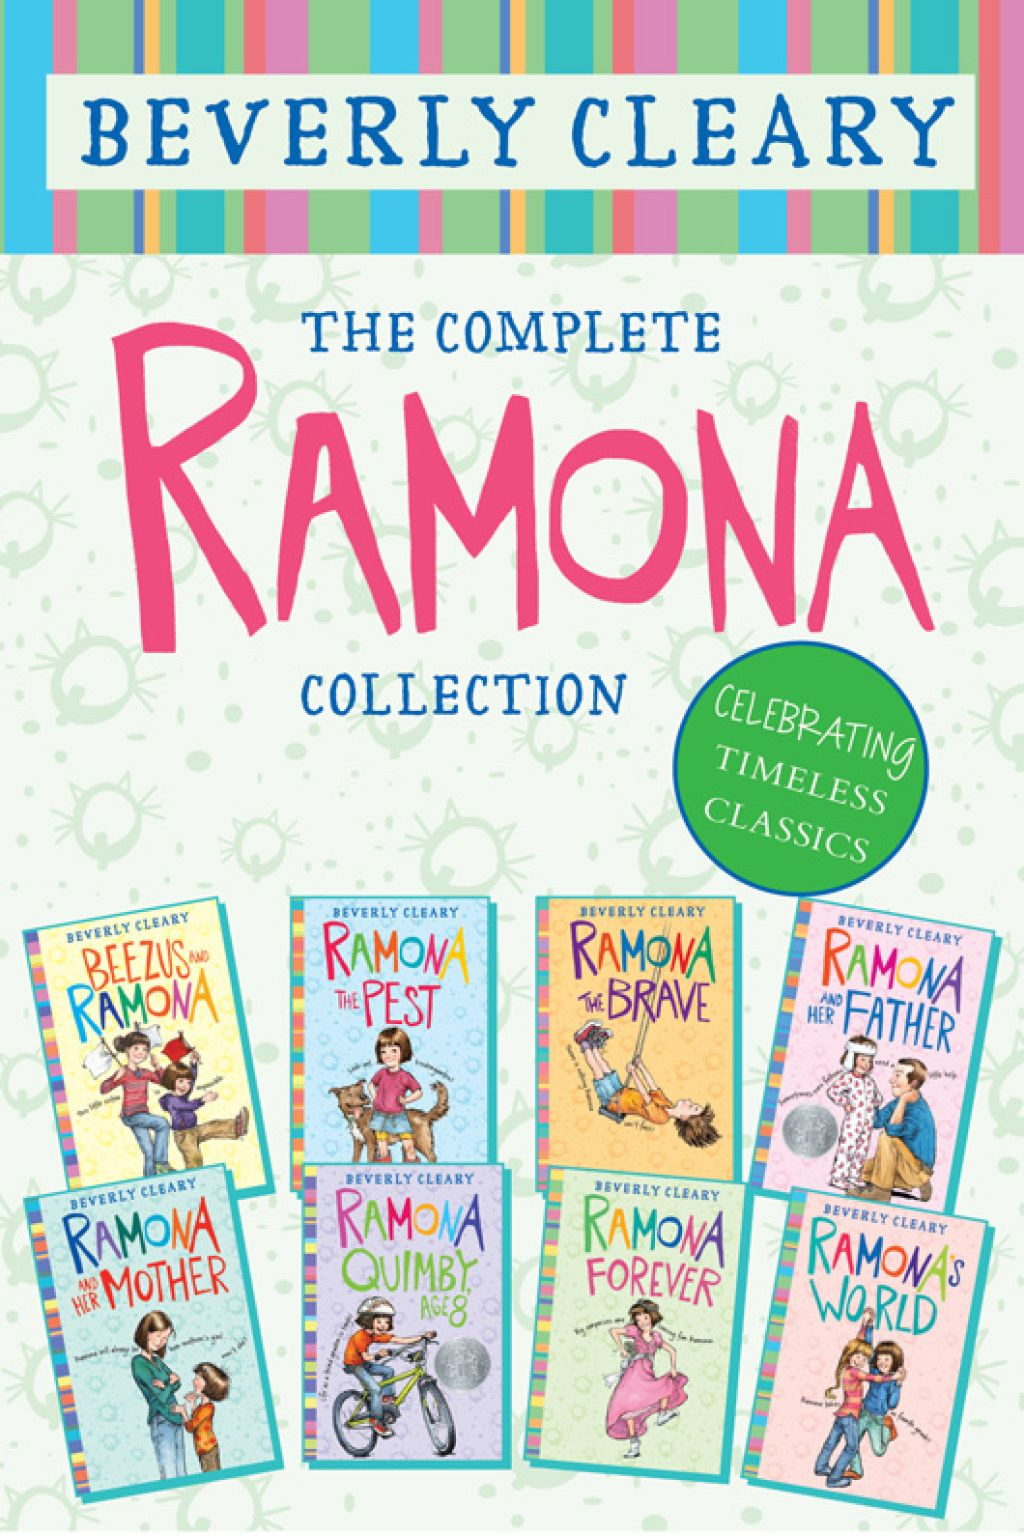 The Complete Ramona Collection Ebook In